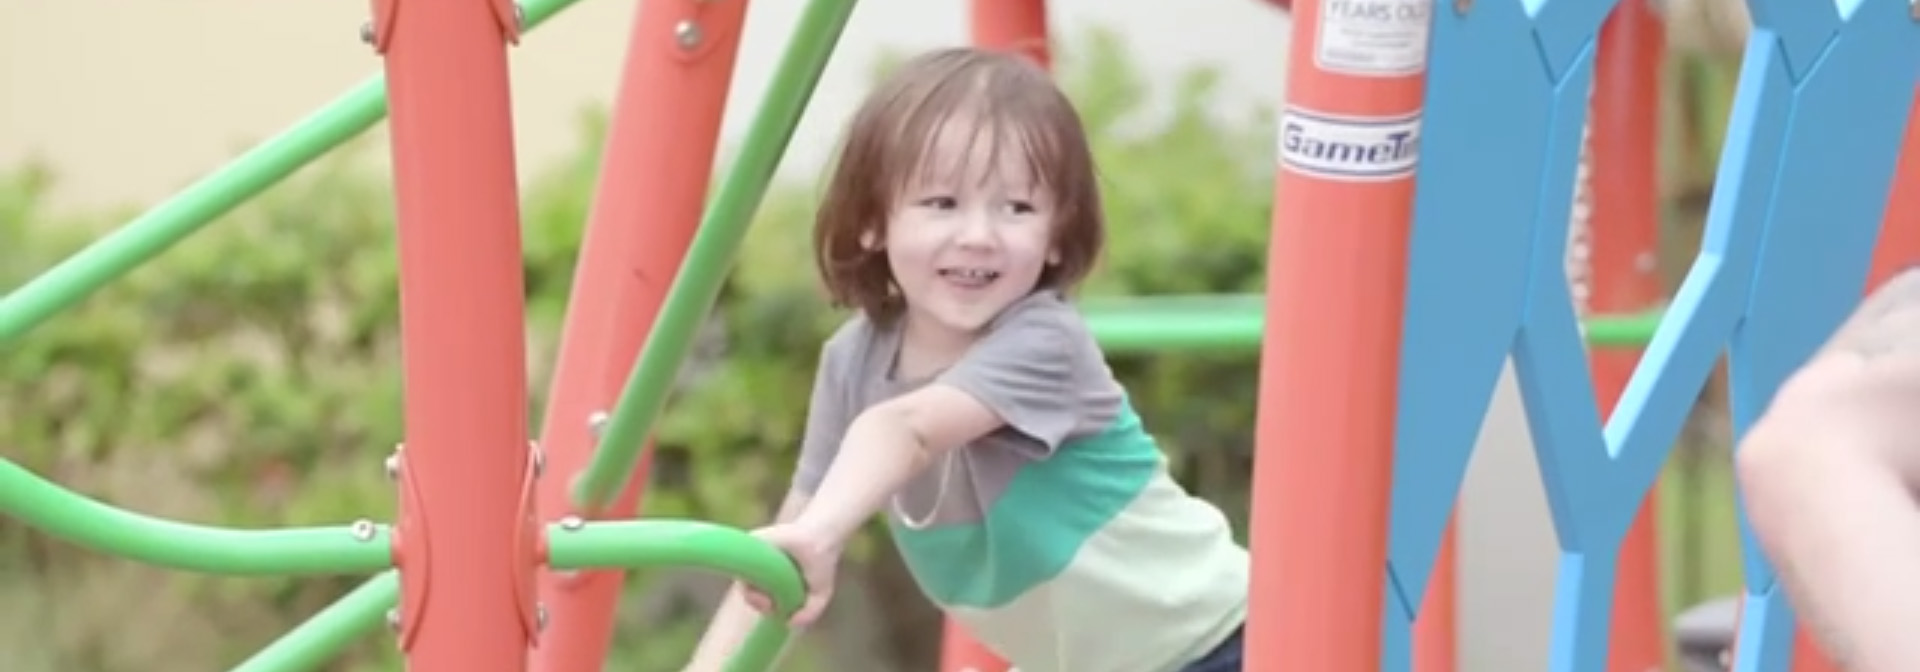 Chance McCalvin was diagnosed with SMA before birth. See how SPINRAZA has helped change what it means for him to have SMA.